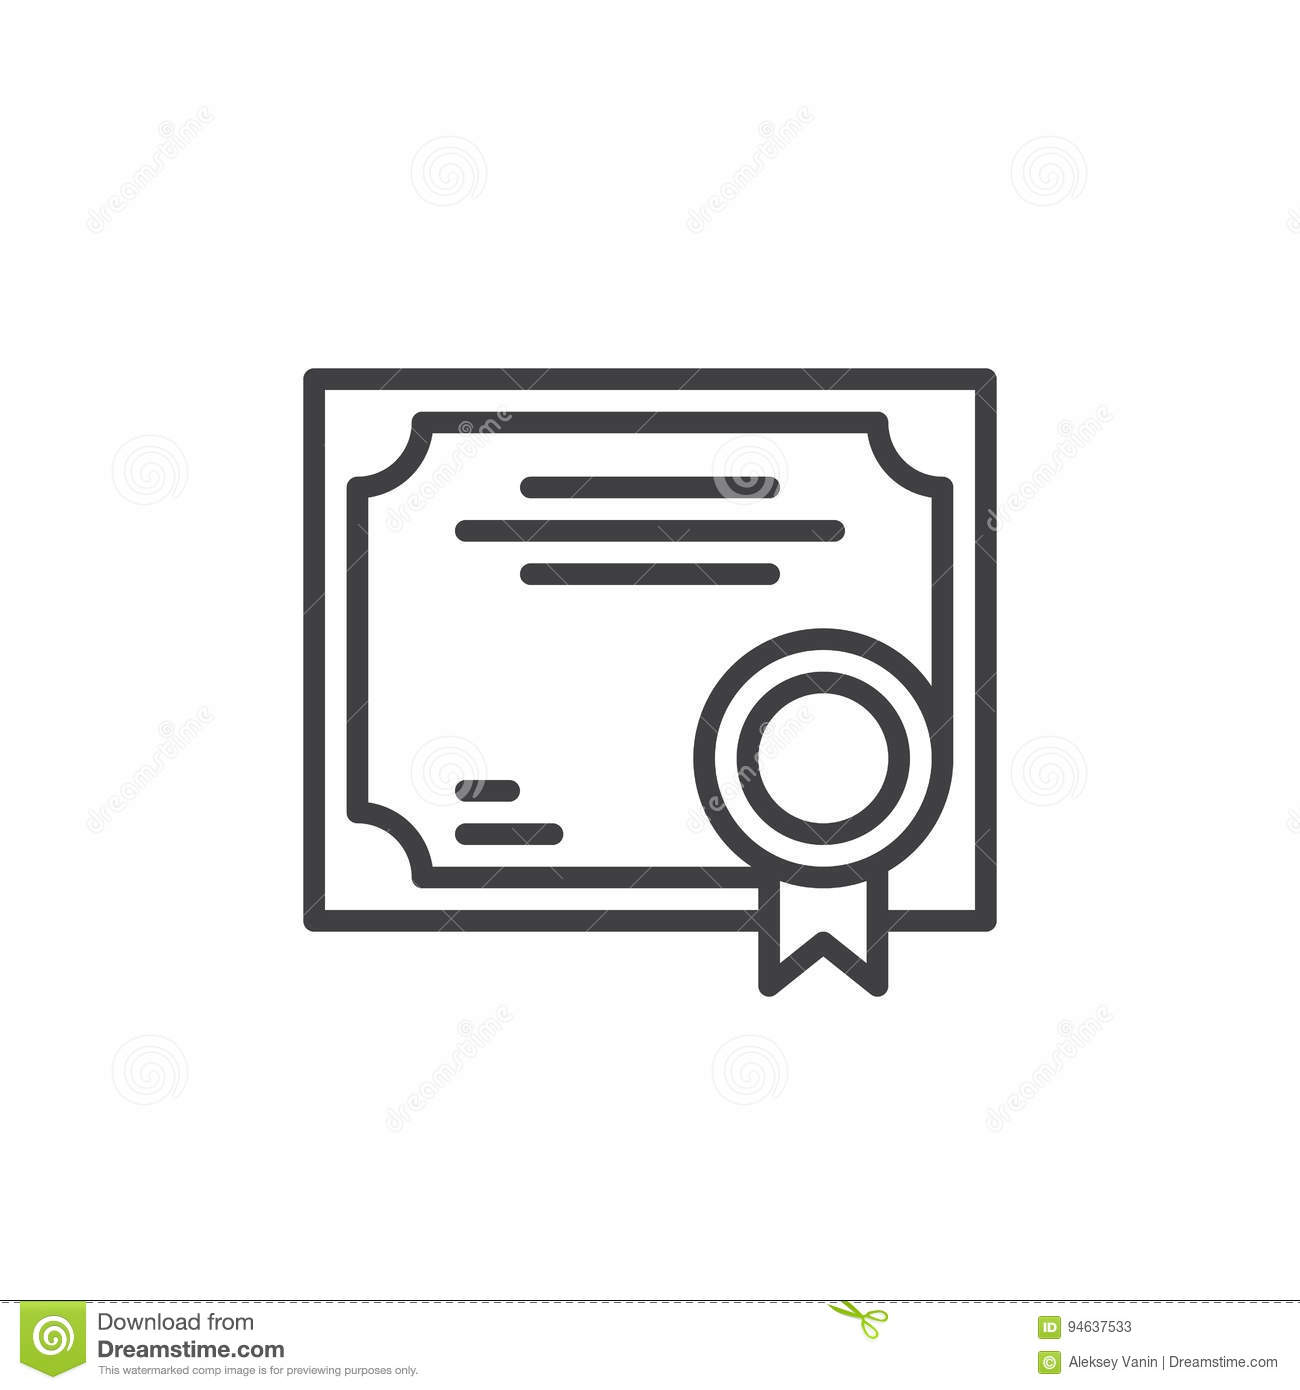 Business Certificate Line Icon Outline Vector Sign Linear Style